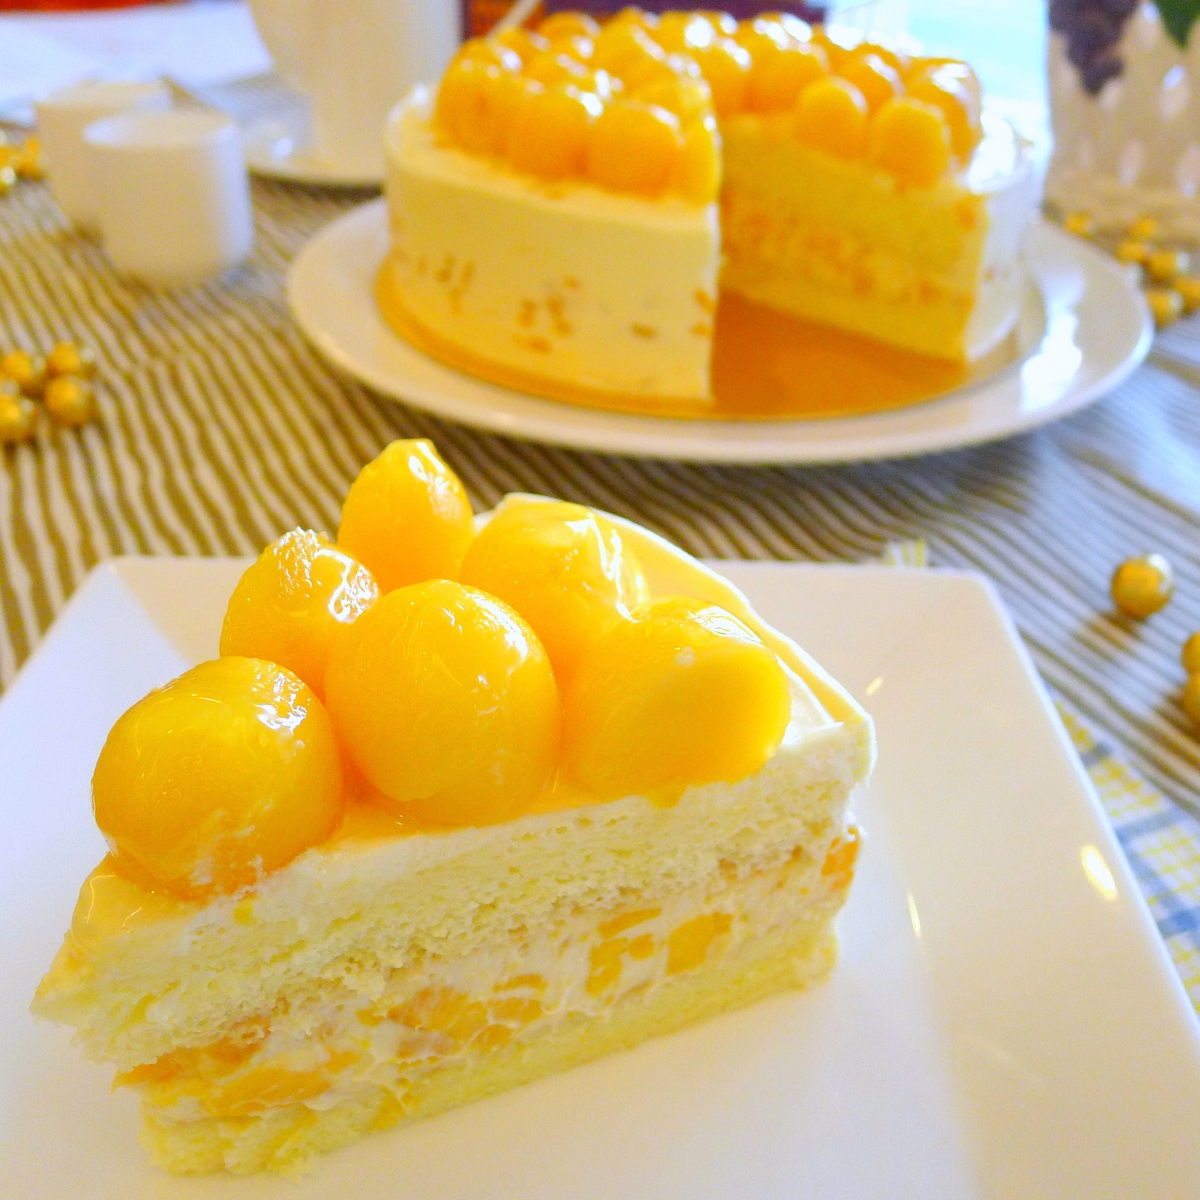 Images For Mango Cake : Mango Cake and Mango Cheesecake Recipes Musings of a ...